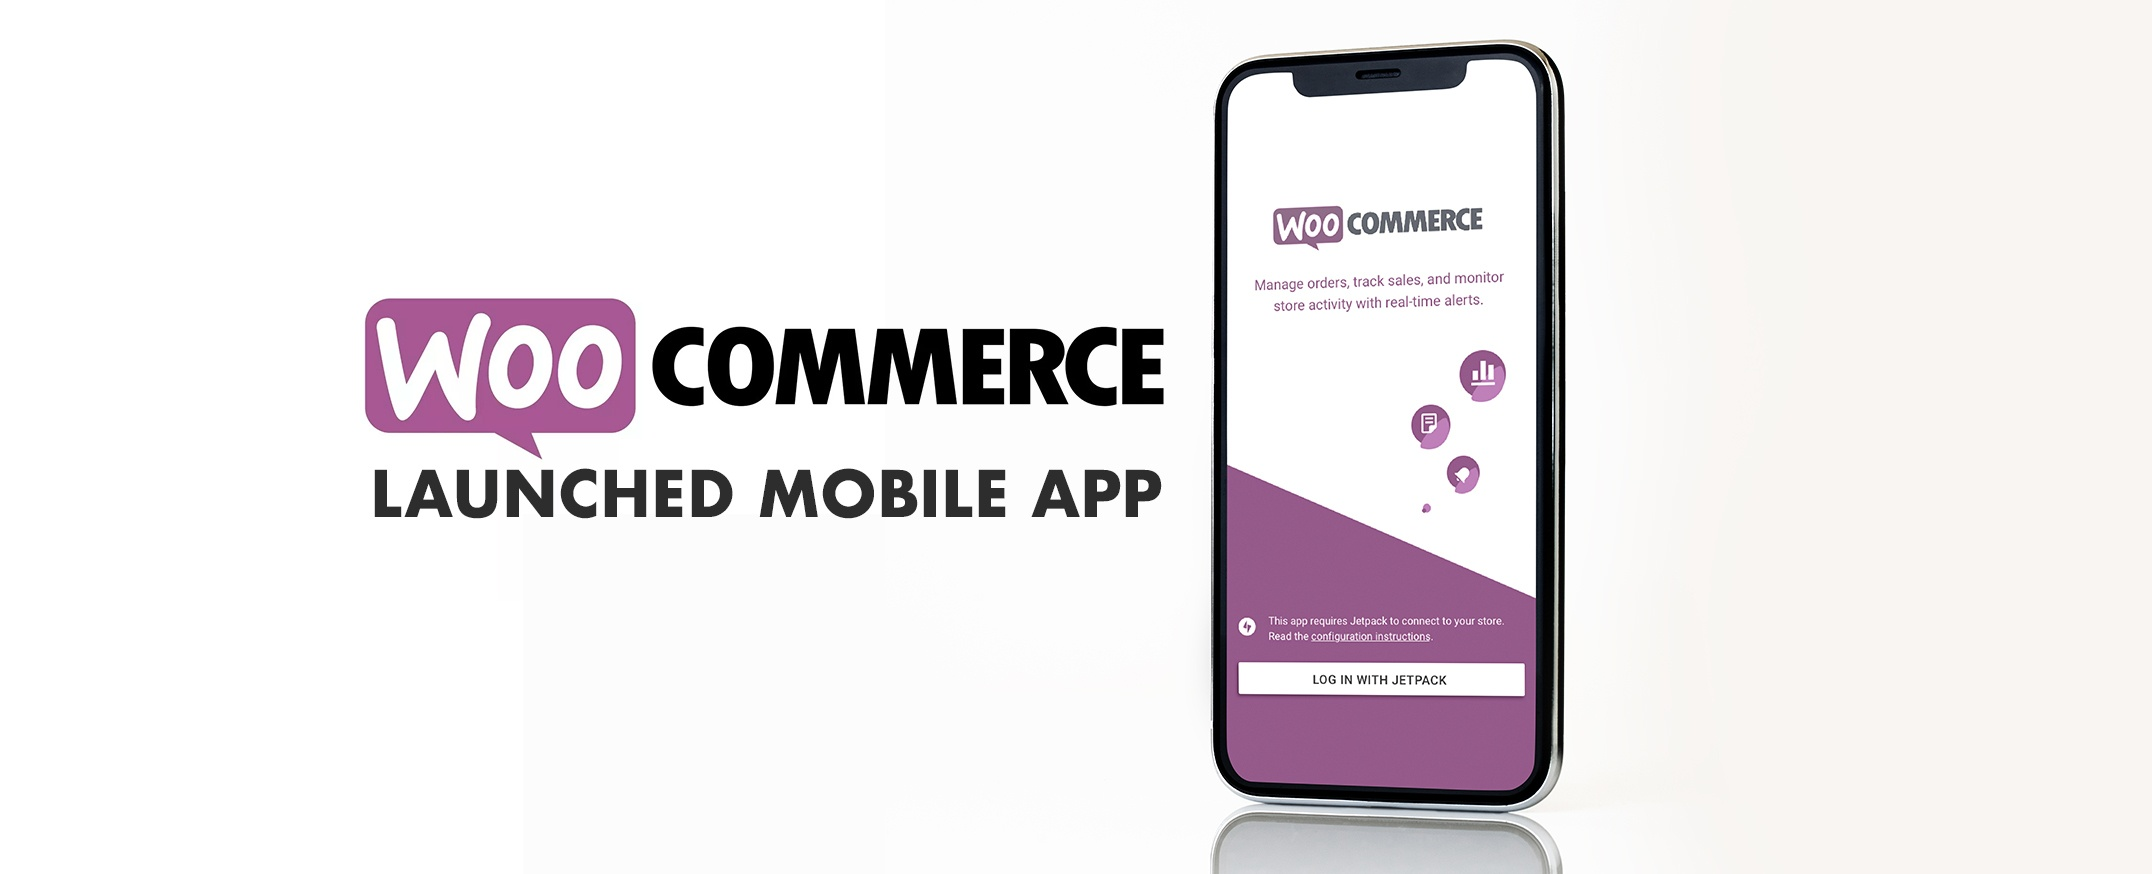 WooCommerce-launched-mobile-app